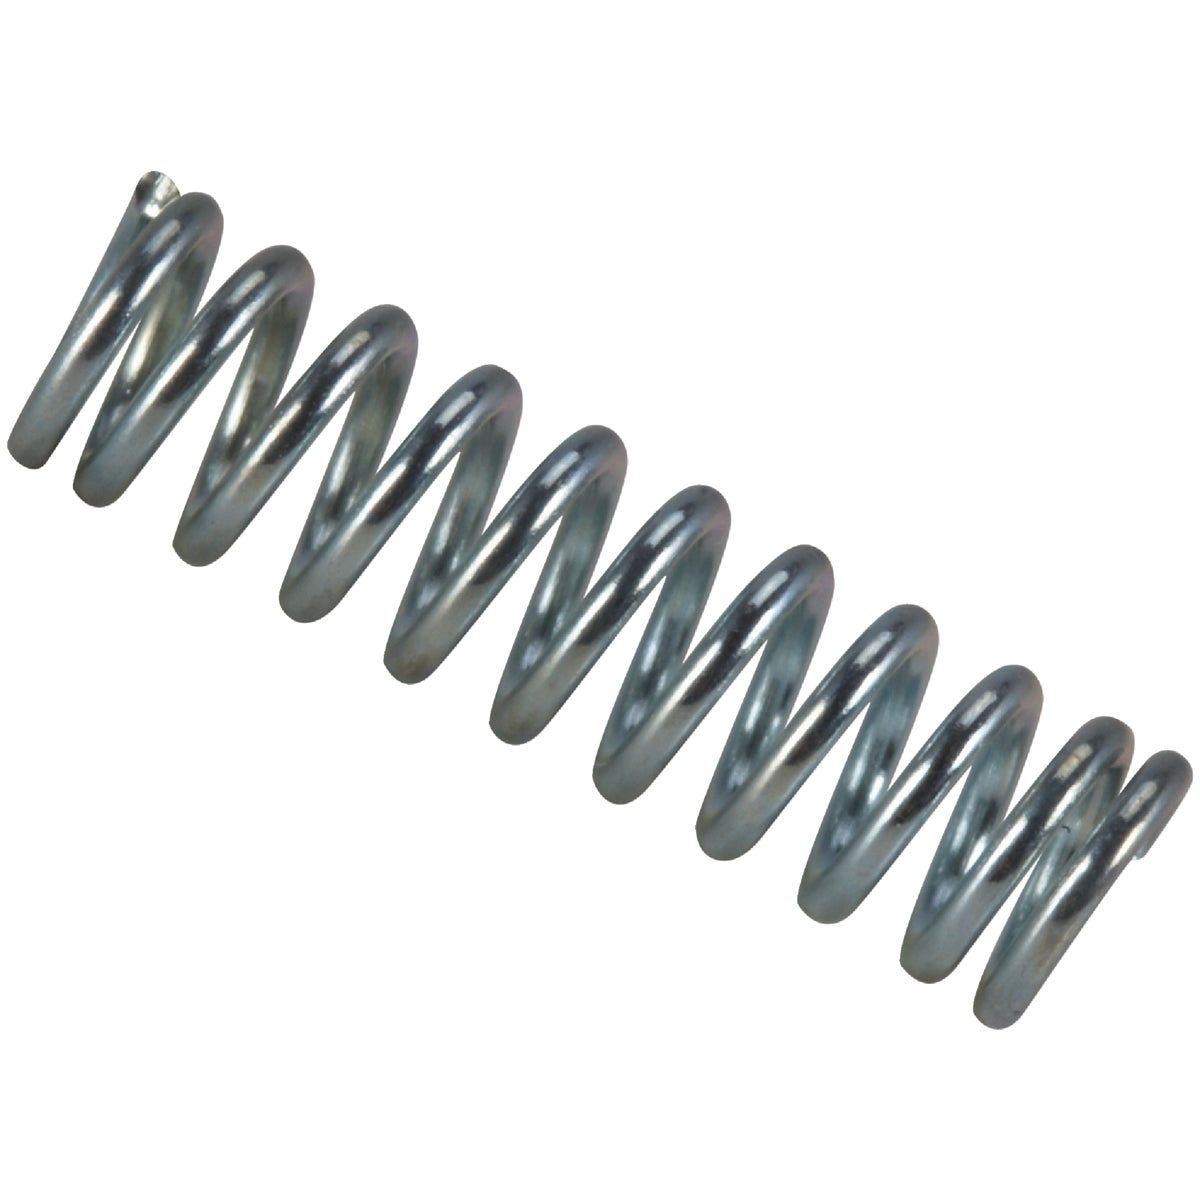 COMPRESSION SPRING - C-624 by Century Spring Corp